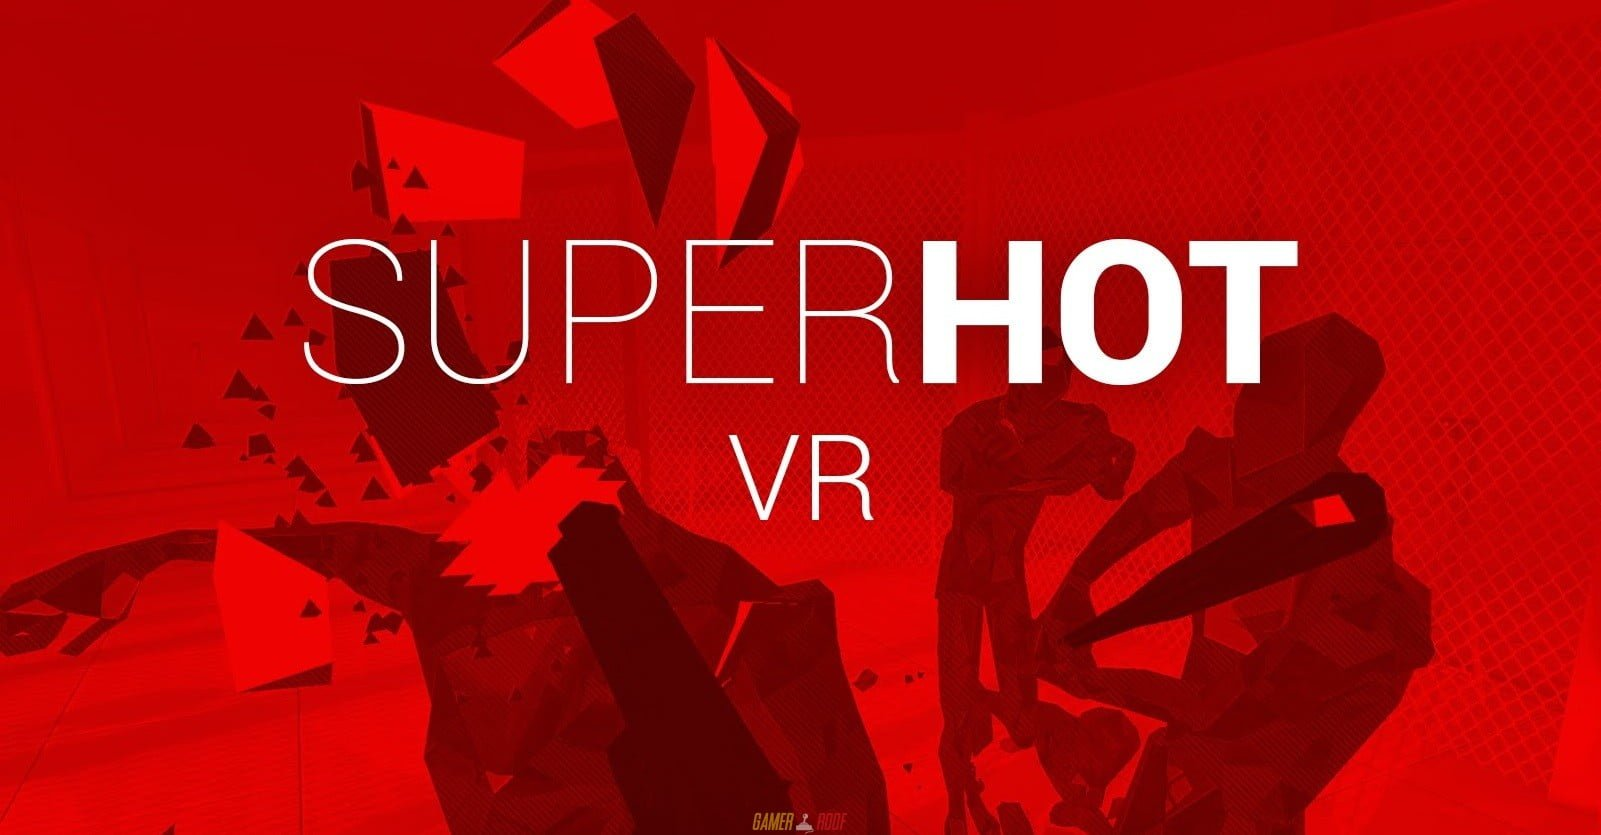 SUPERHOT PSVR Version Full Game Free Download